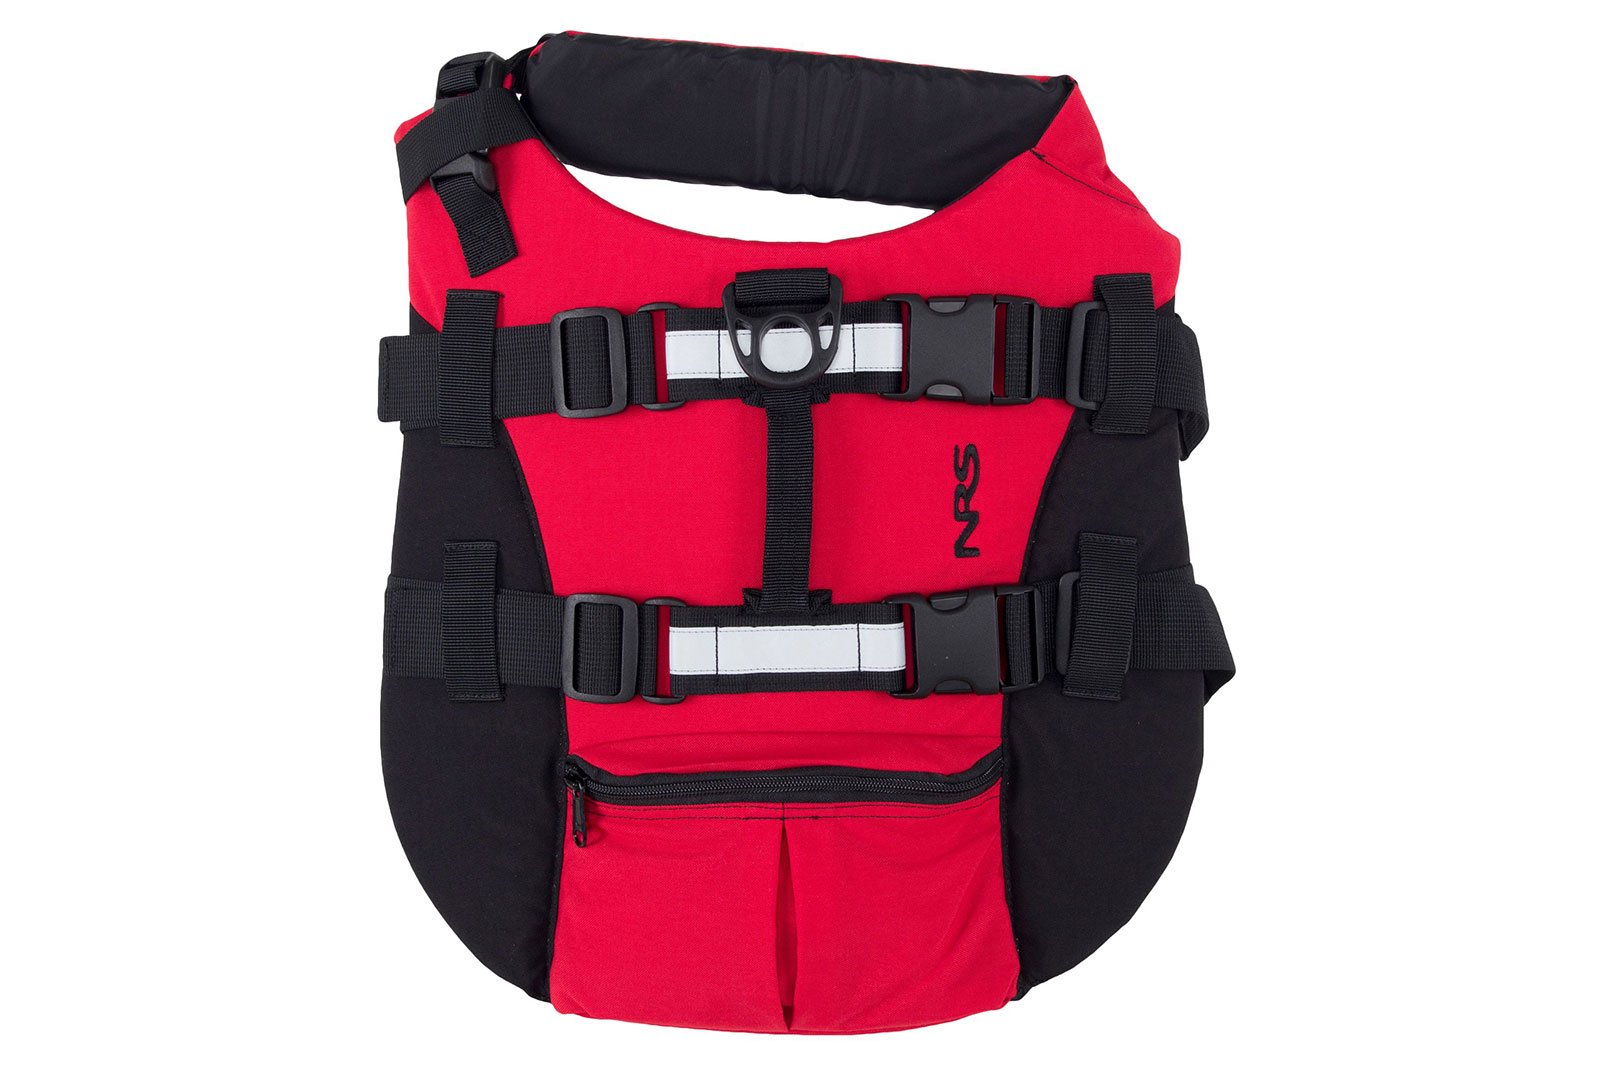 <img class='new_mark_img1' src='https://img.shop-pro.jp/img/new/icons5.gif' style='border:none;display:inline;margin:0px;padding:0px;width:auto;' />NRS CFD Dog Life Jacket ドッグライフジャケット (40023)